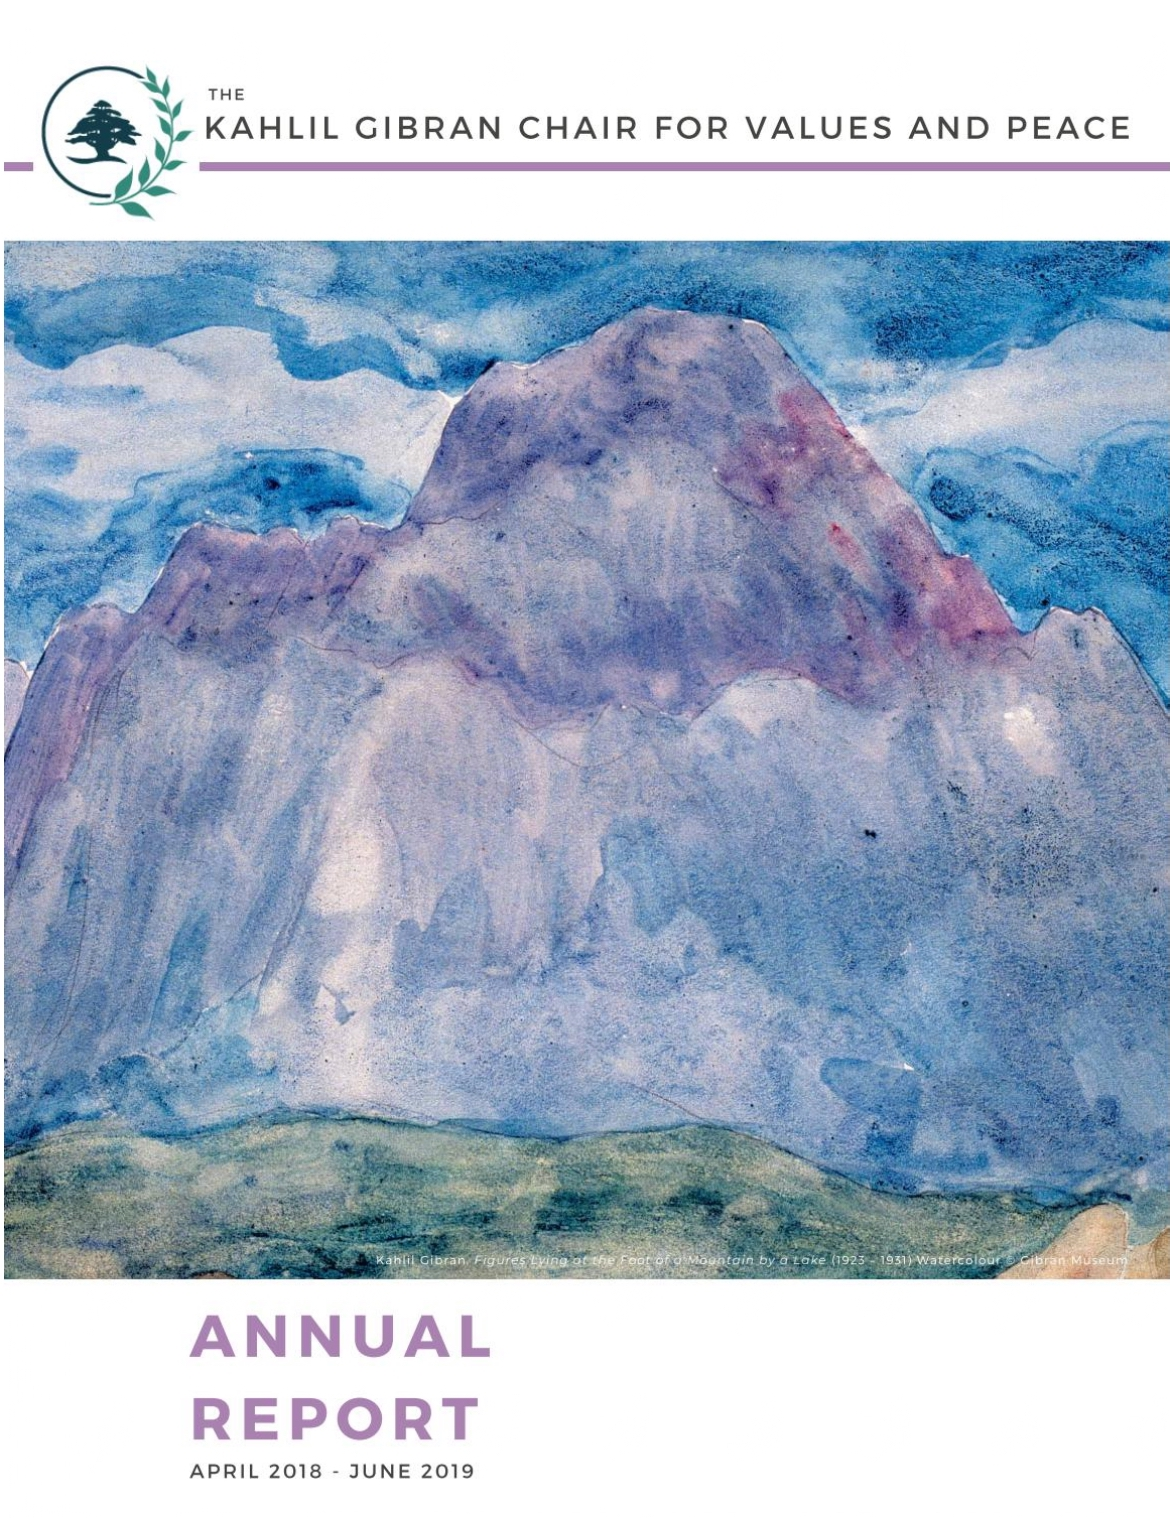 Annual Report, The George and Lisa Zakhem Kahlil Gibran Chair for Values and Peace, April 2018 - June 2019.